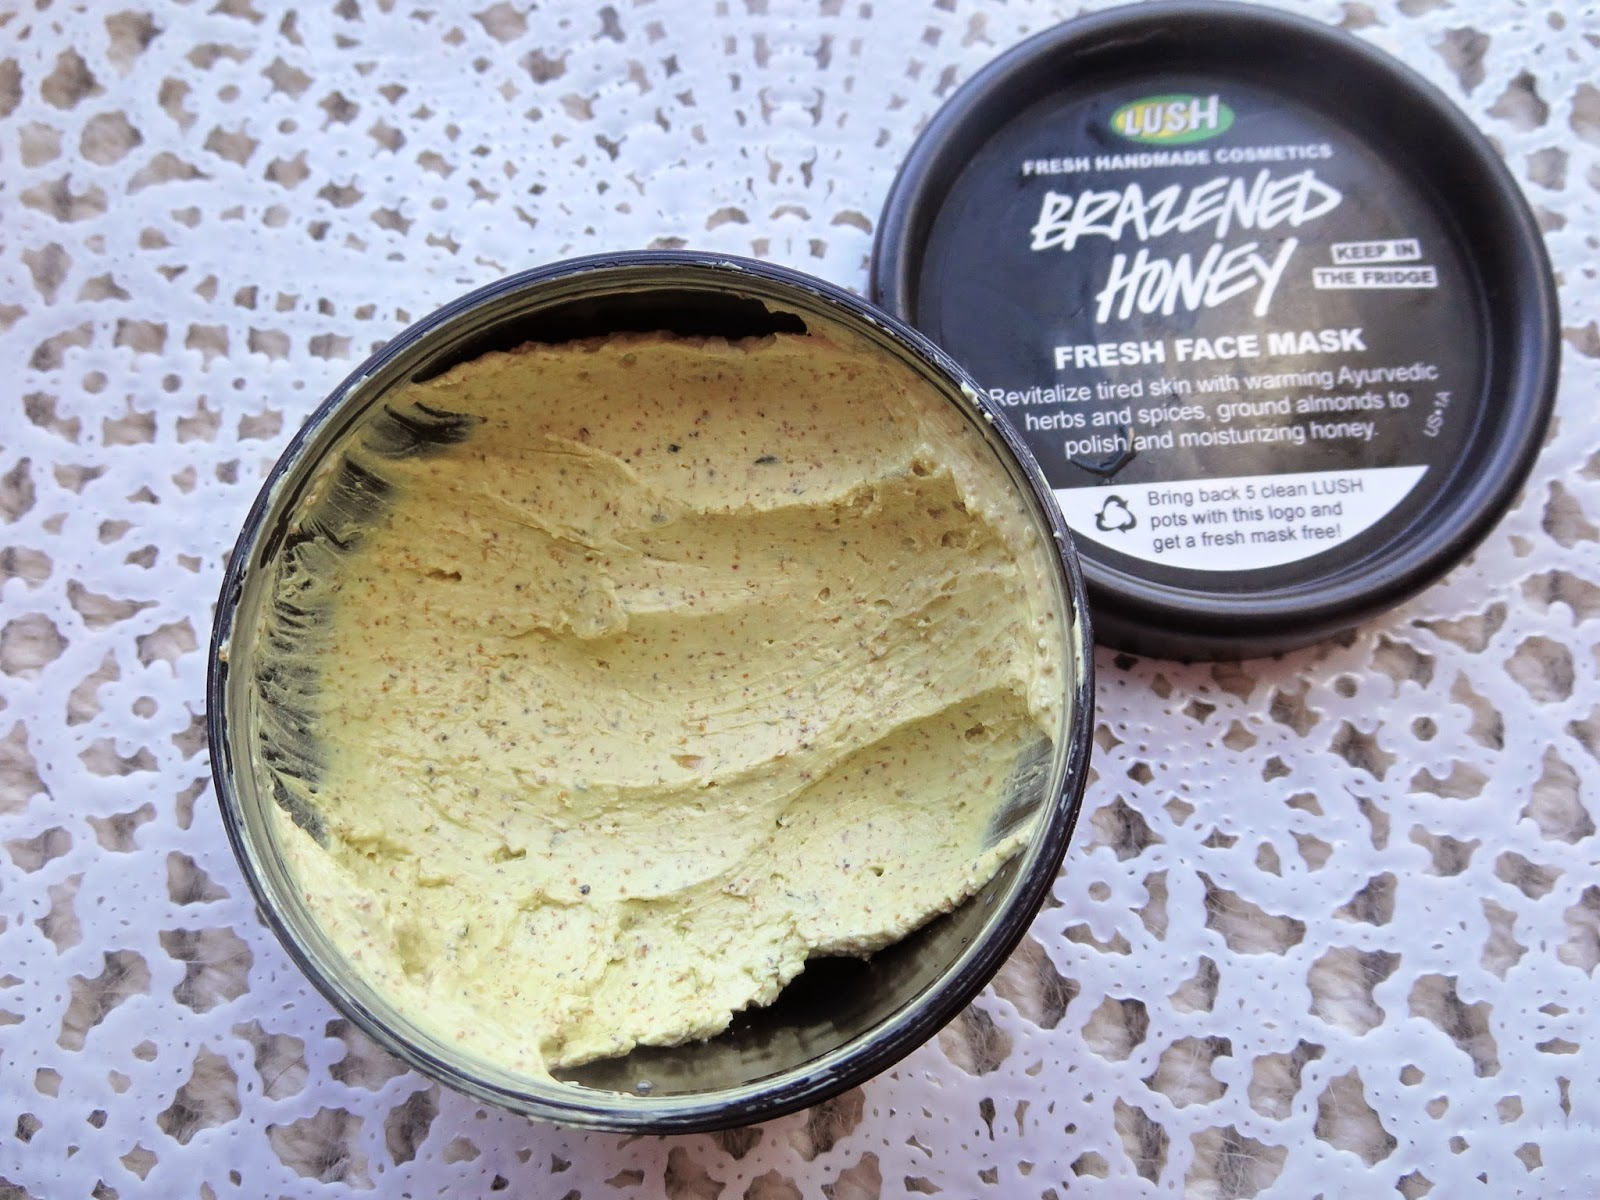 a picture of Lush Brazened Honey Fresh Face Mask (review)